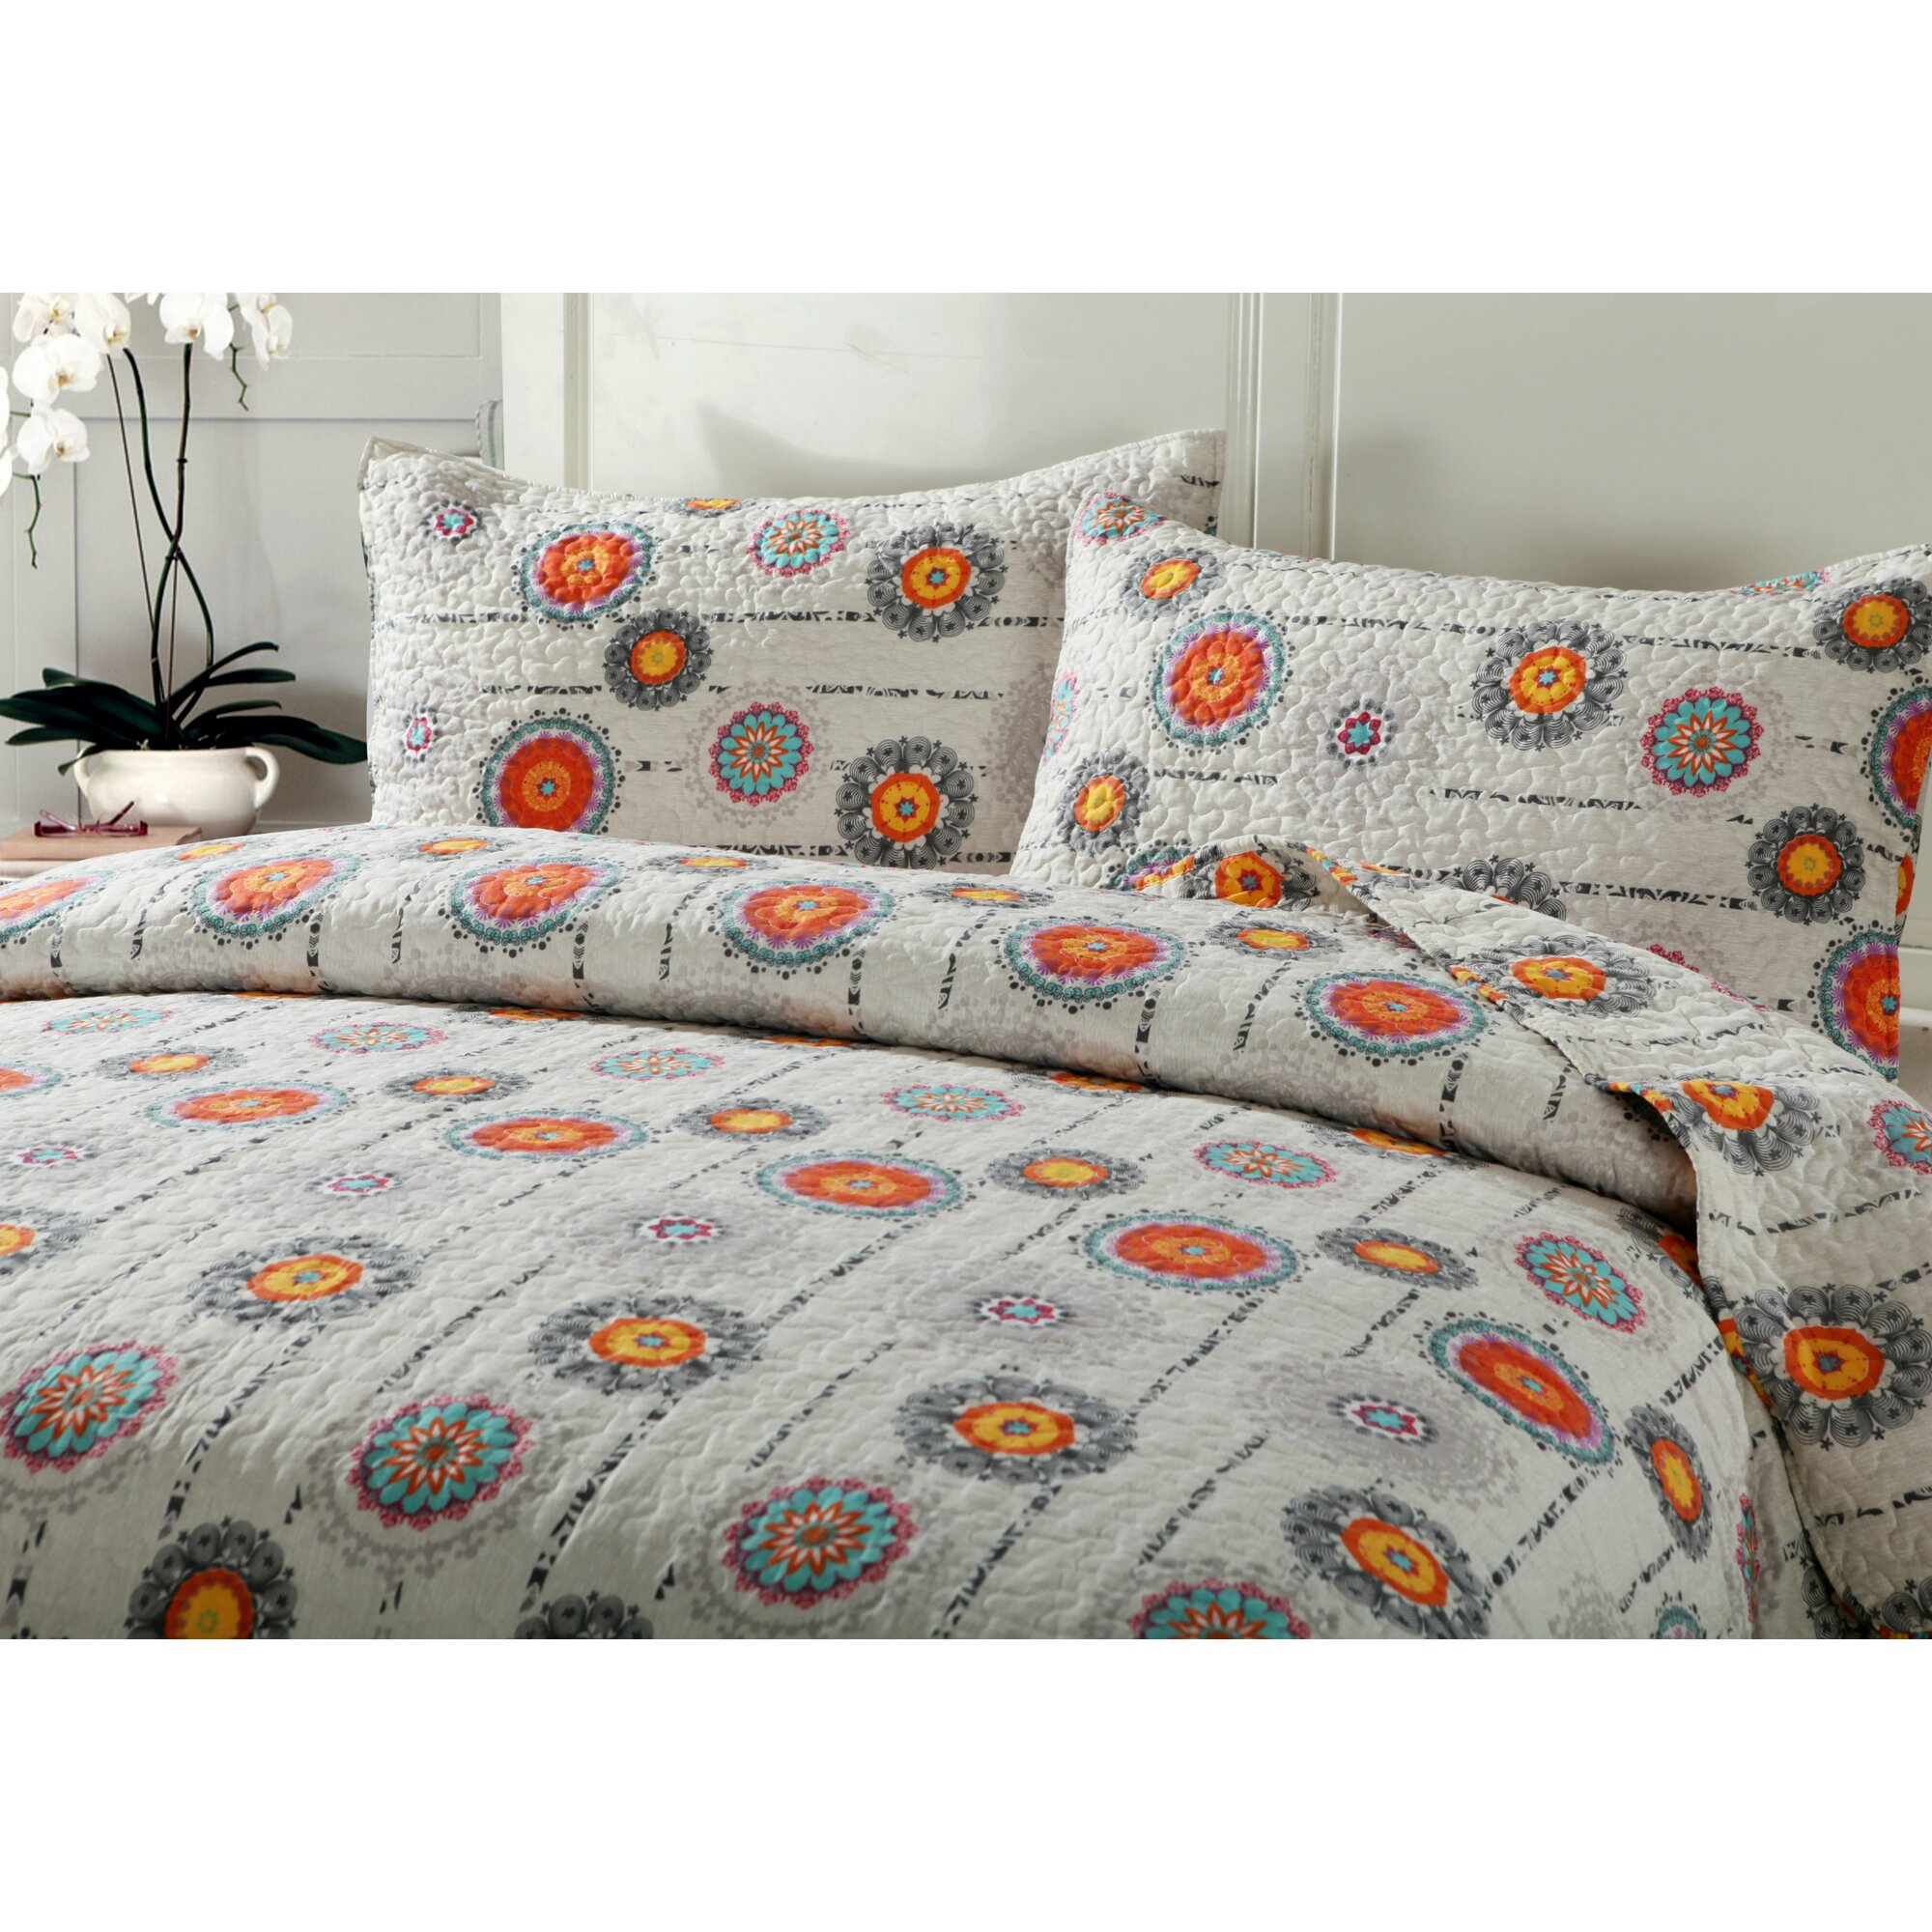 A keletnemet lanyok eneke   made in hungaria 457 - Bed Sheet Set With Quilt Bohemian Constellations Reversible Patchwork Quilt Set